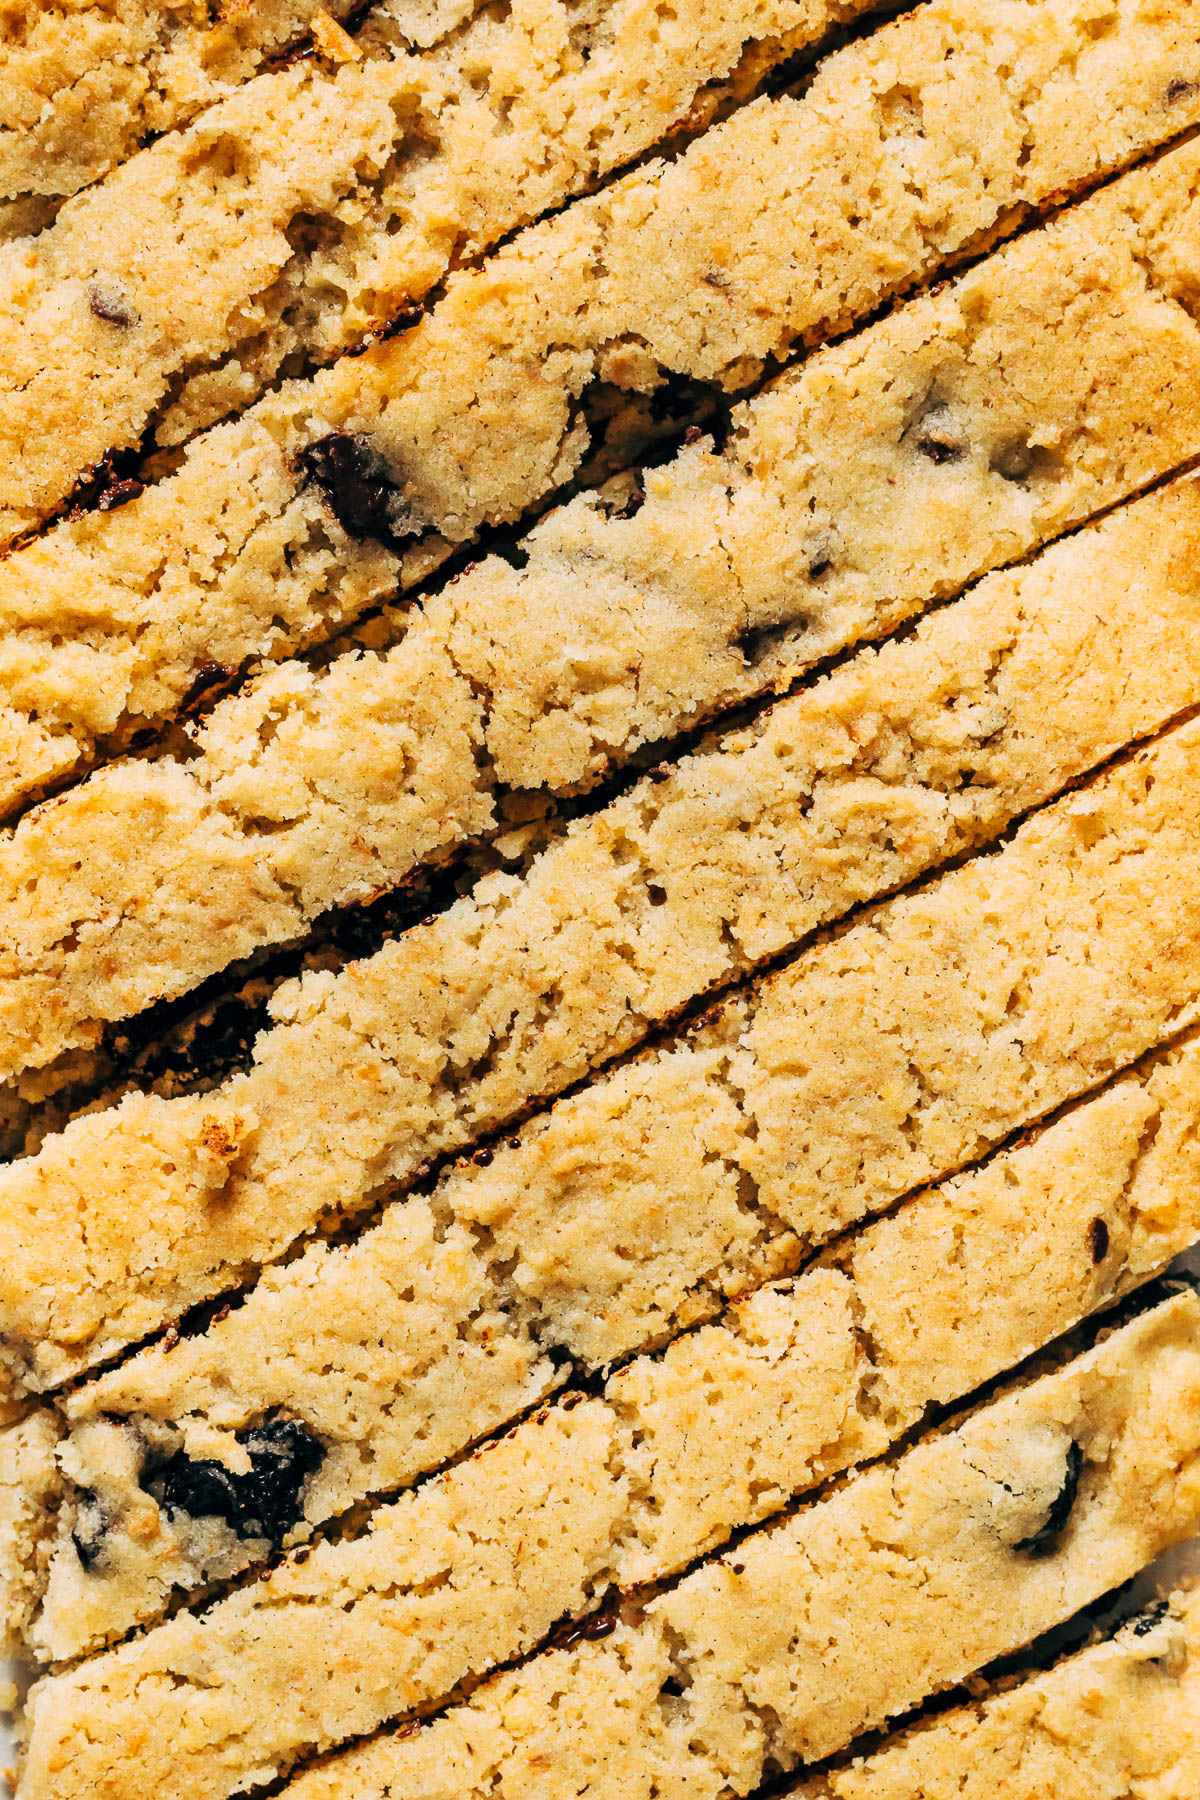 Close up of sliced biscotti after first bake.